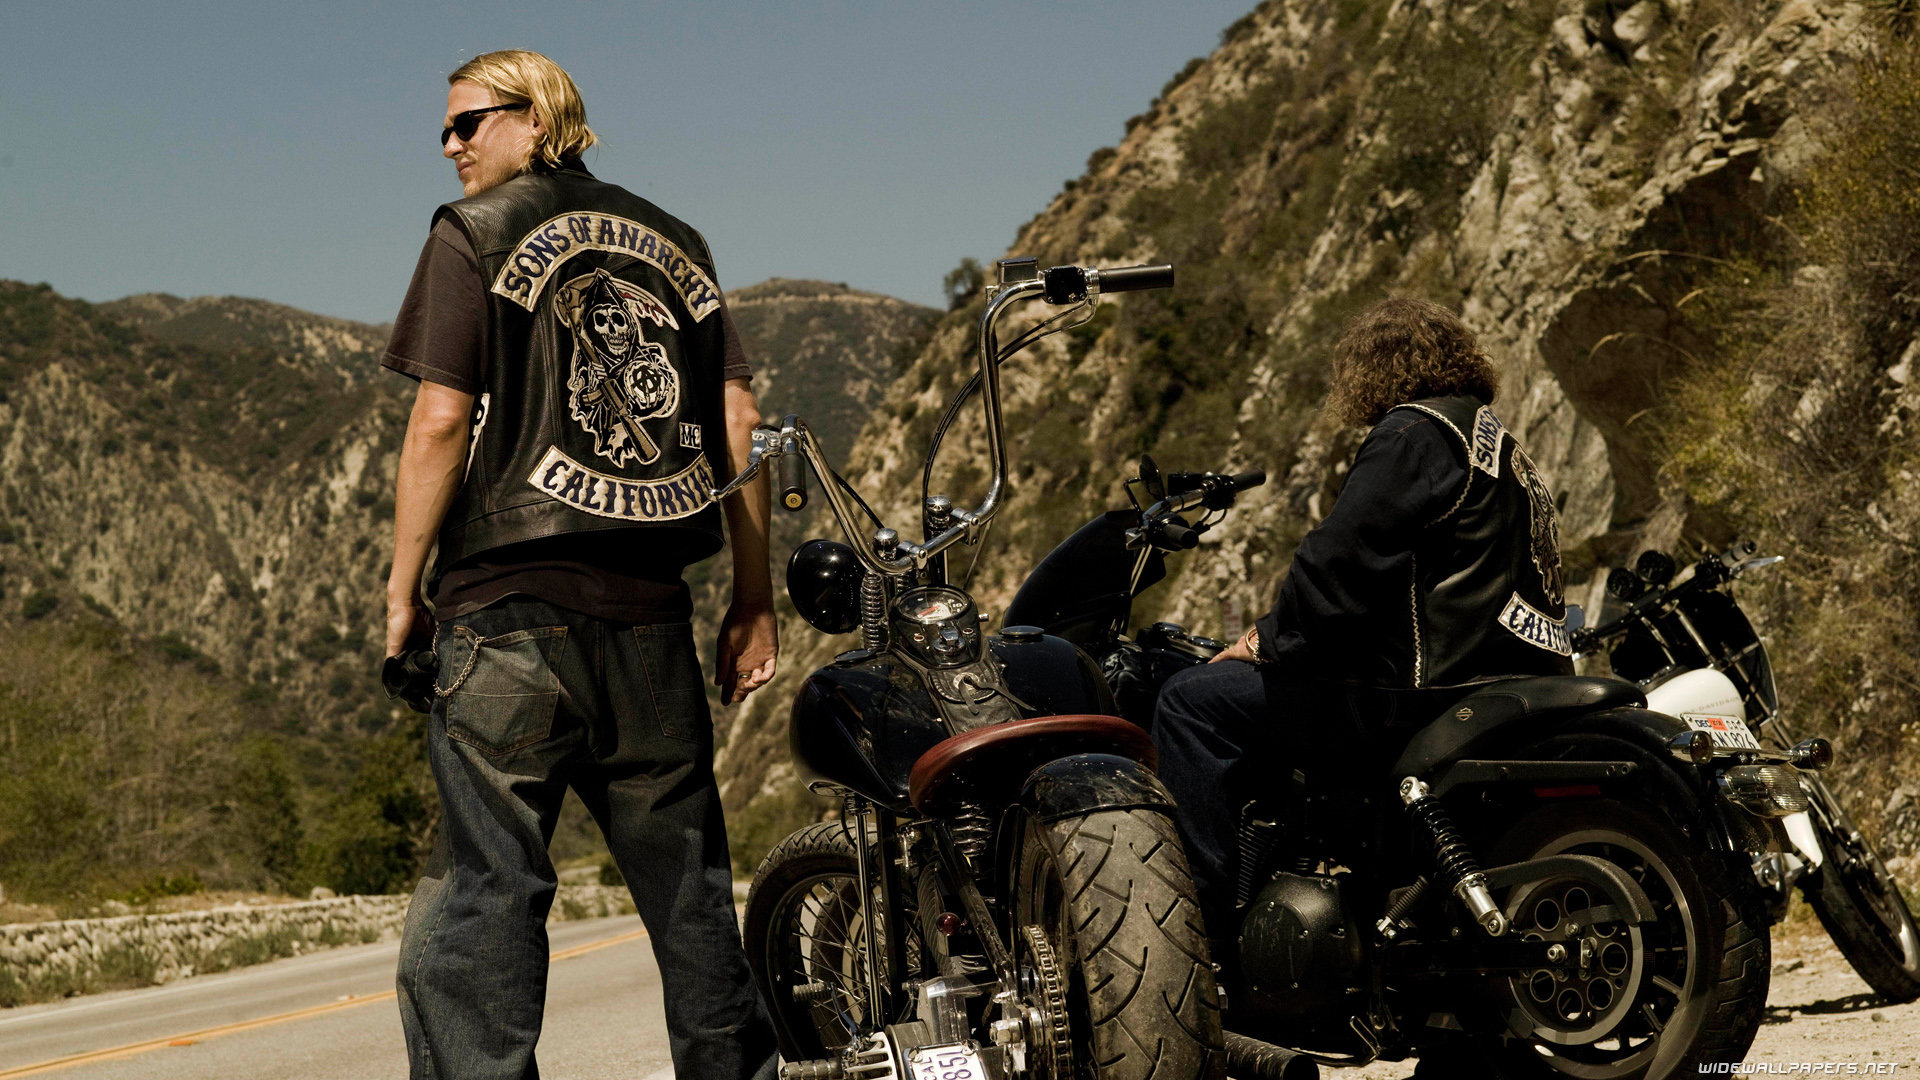 Sons Of Anarchy Wallpapers Hd For Desktop Backgrounds